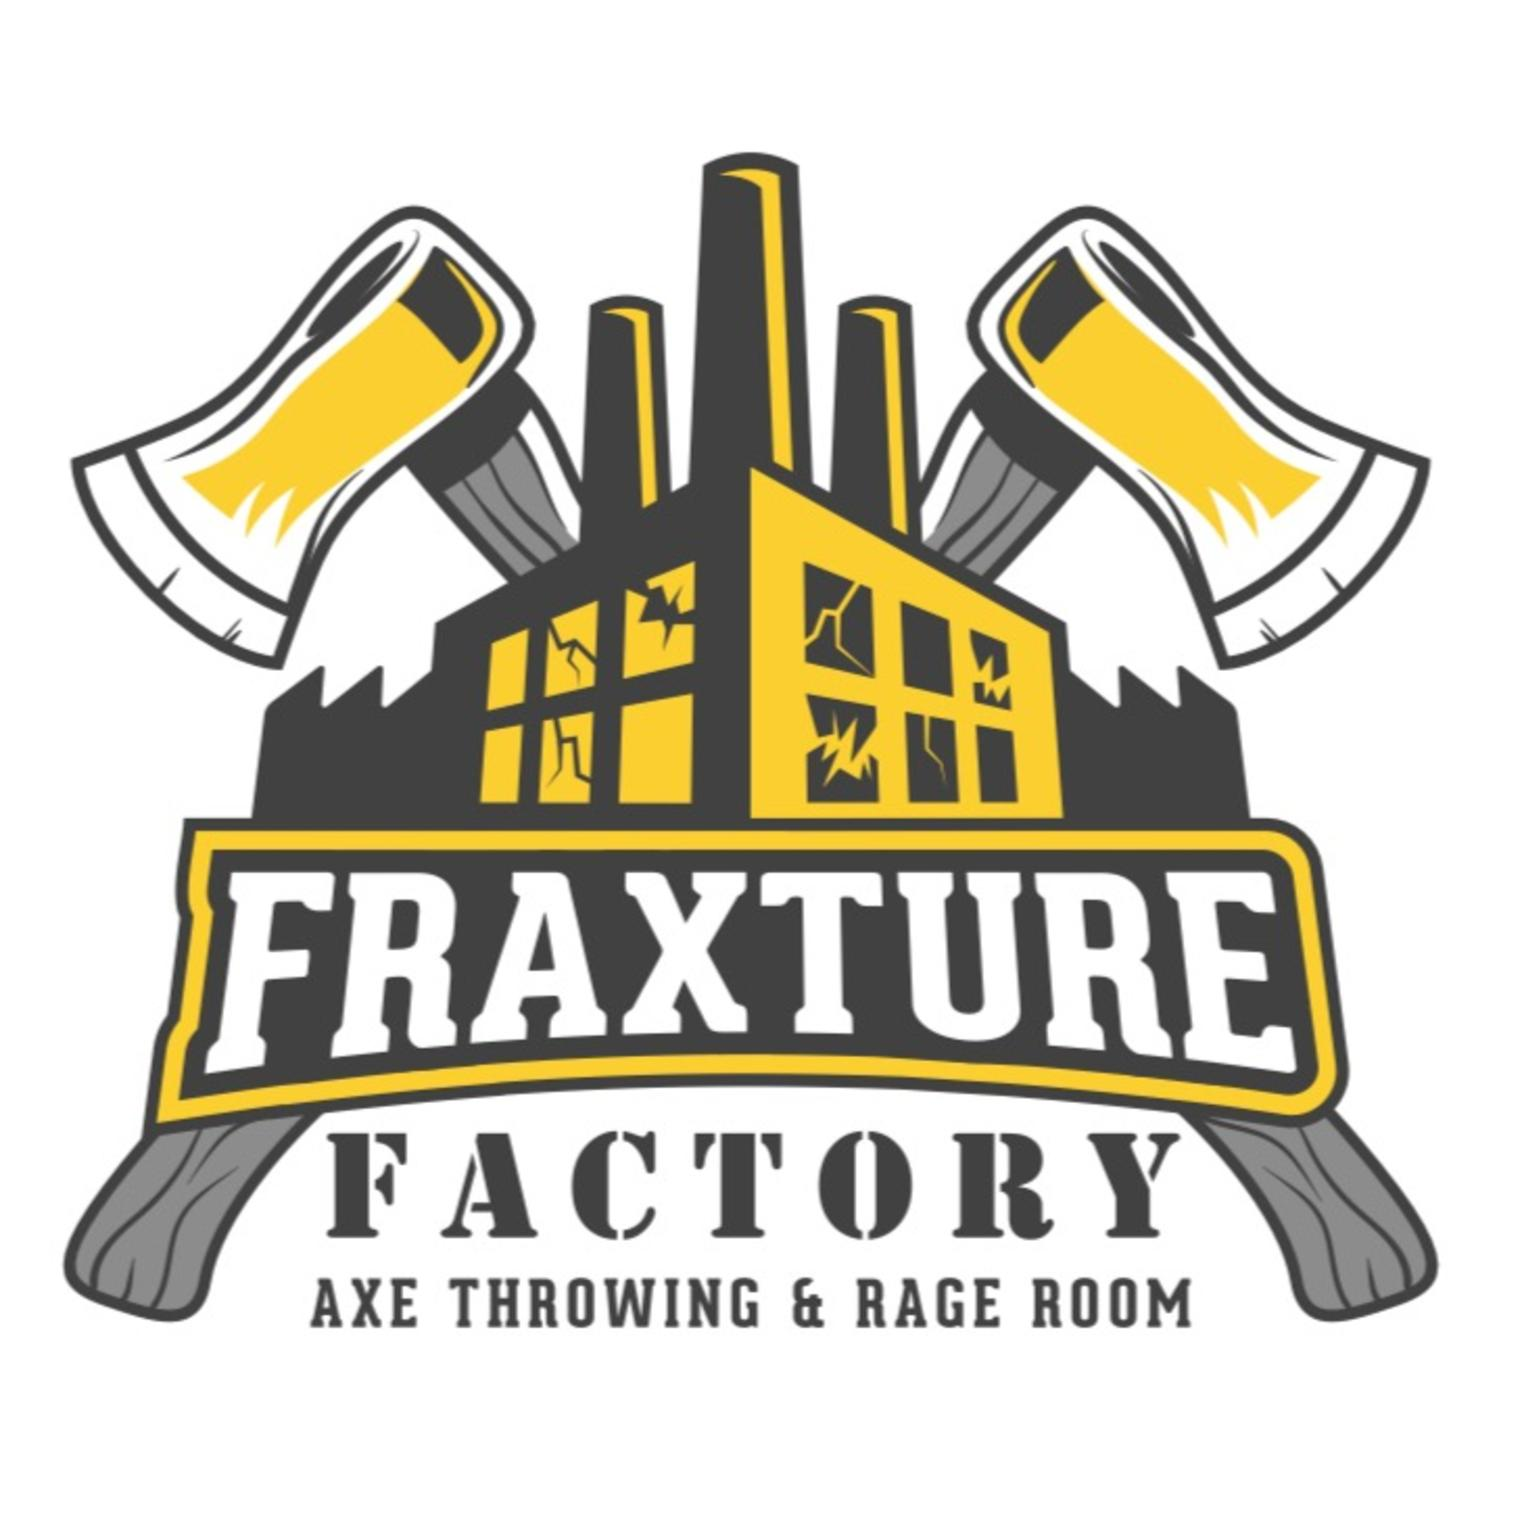 Fraxture Factory